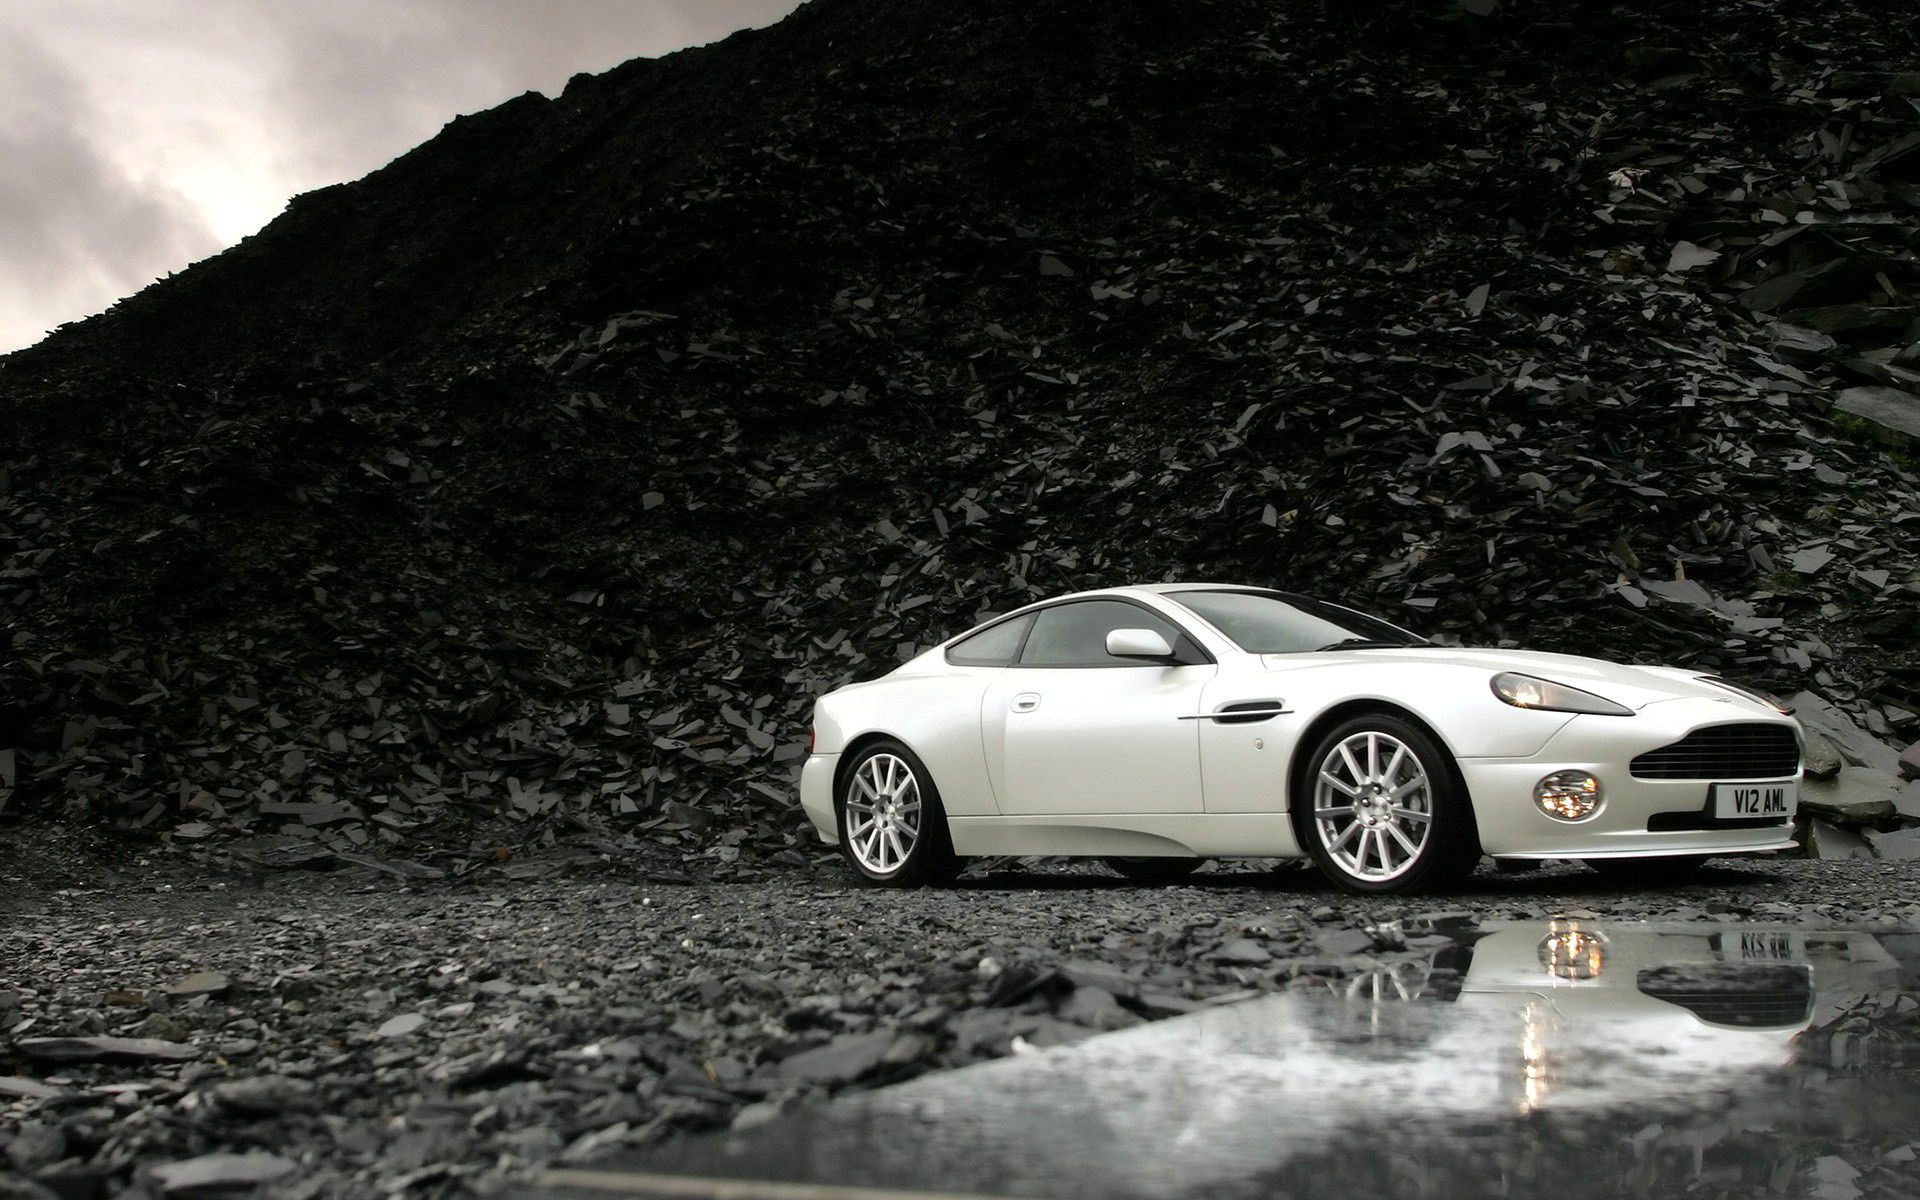 Aston Martin Wallpaper Widescreen #60t Amazing Pictures